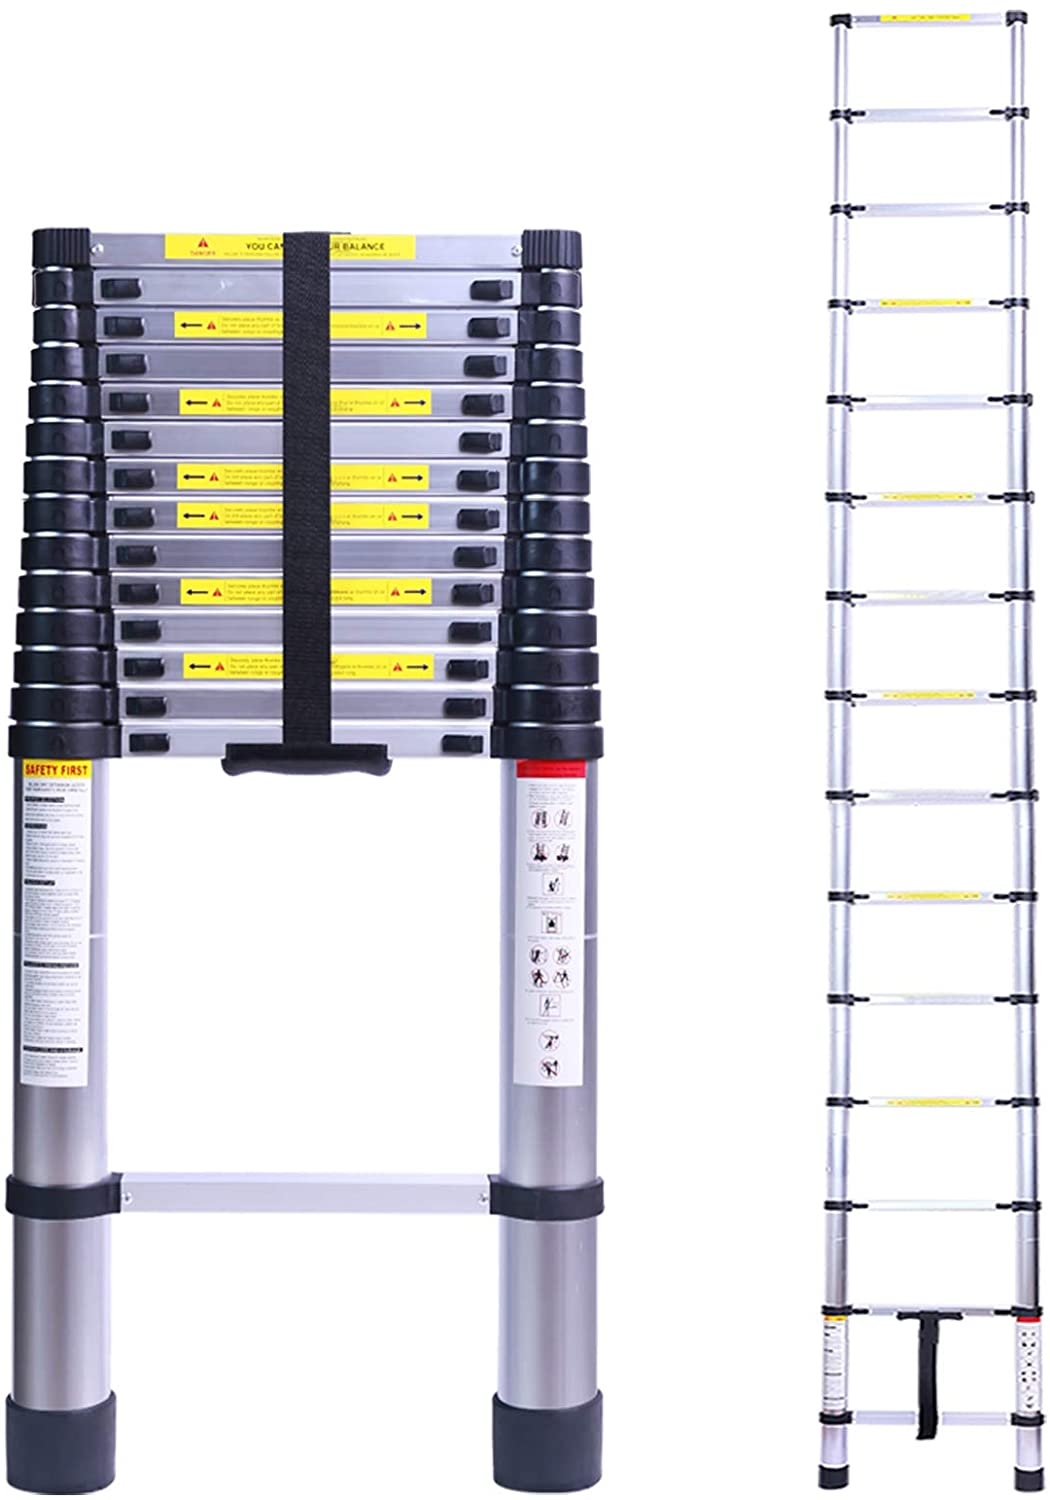 Terokota 19.7FT Superhigh Collapsible Telescoping Ladder, Aluminum Telescoping Ladders, Lightweight Collapsible Ladder Extension for RV, Loft, Home, Attic, 330LB Capacity